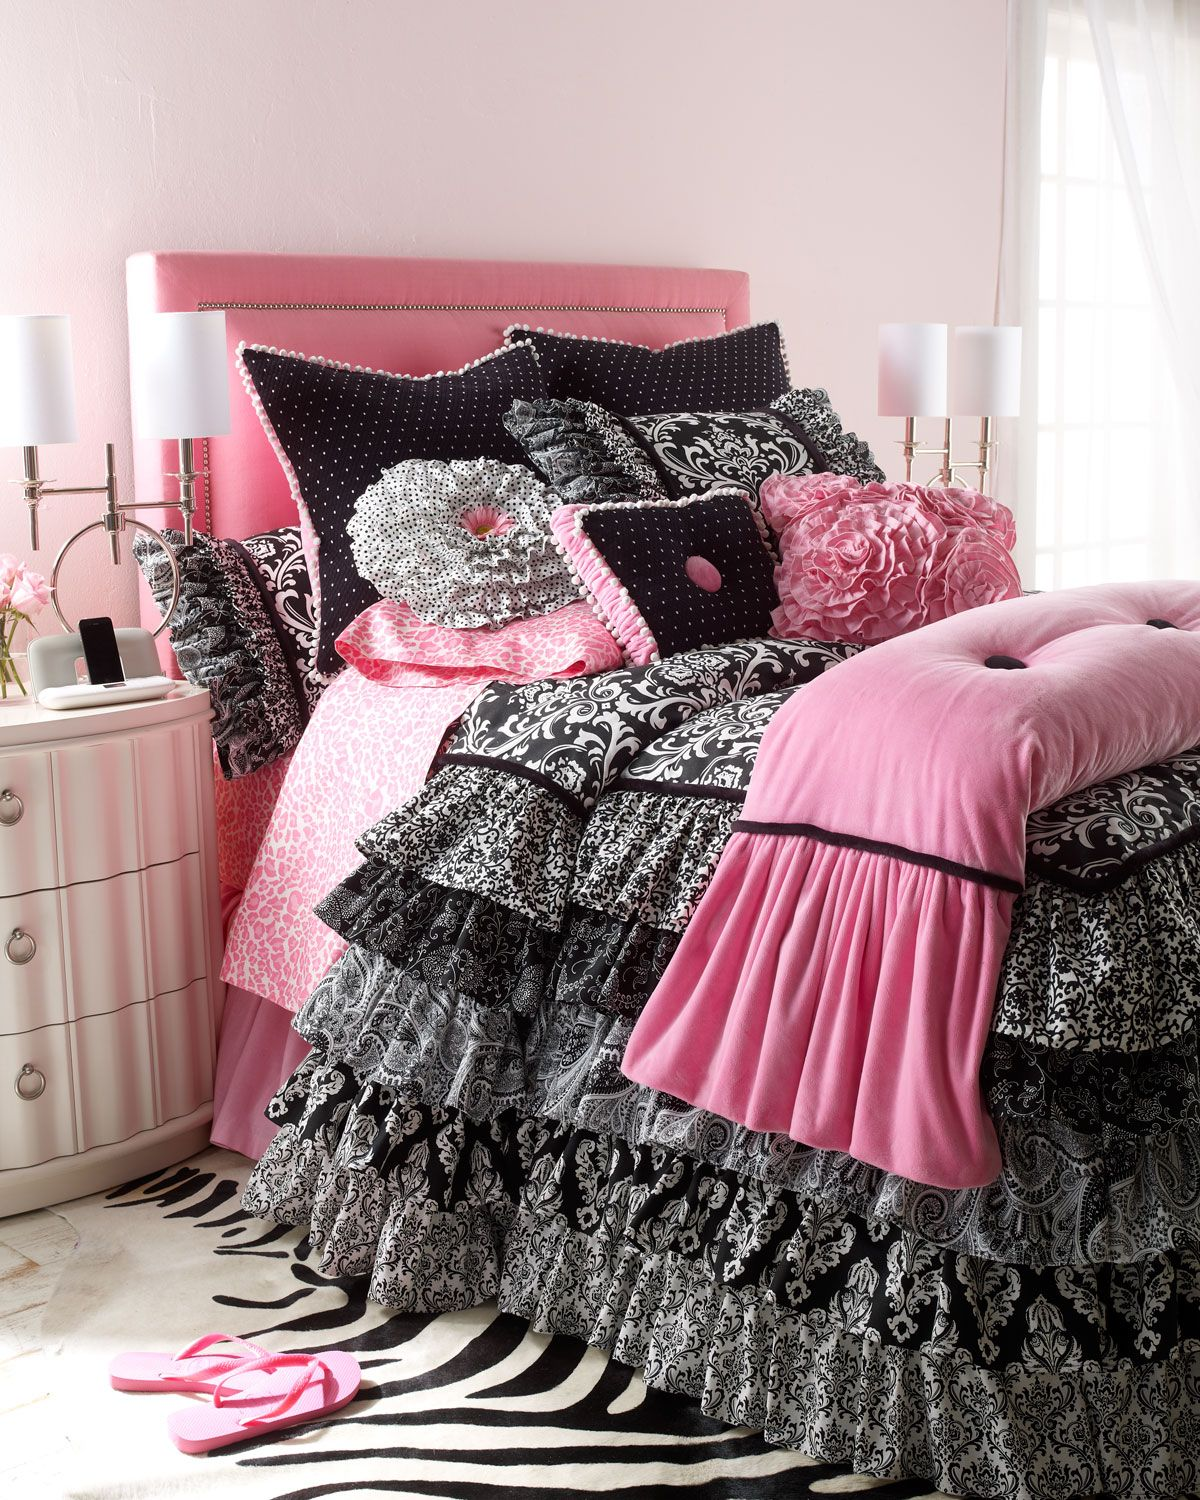 Rogue designs yin yang bed linens pink and black for Lit yin yang